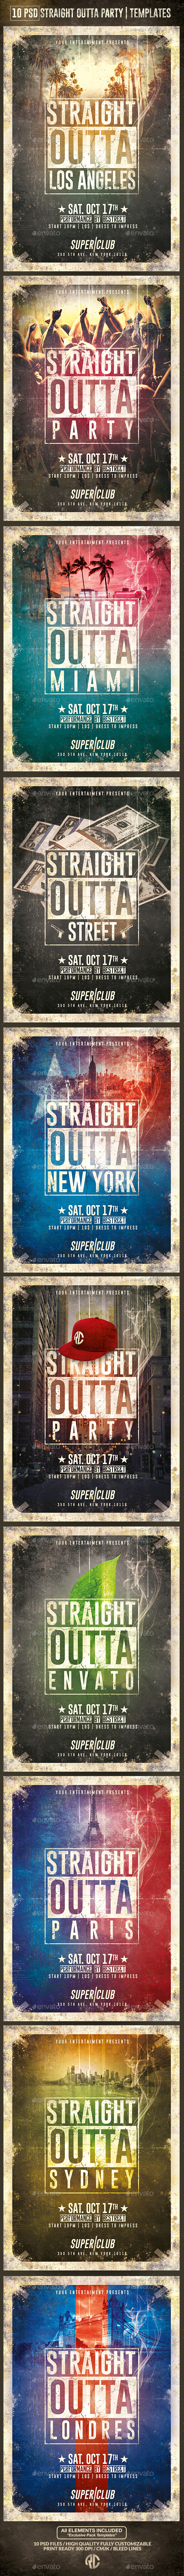 10 Flyers Straight Outta Party | Psd Templates - Events Flyers